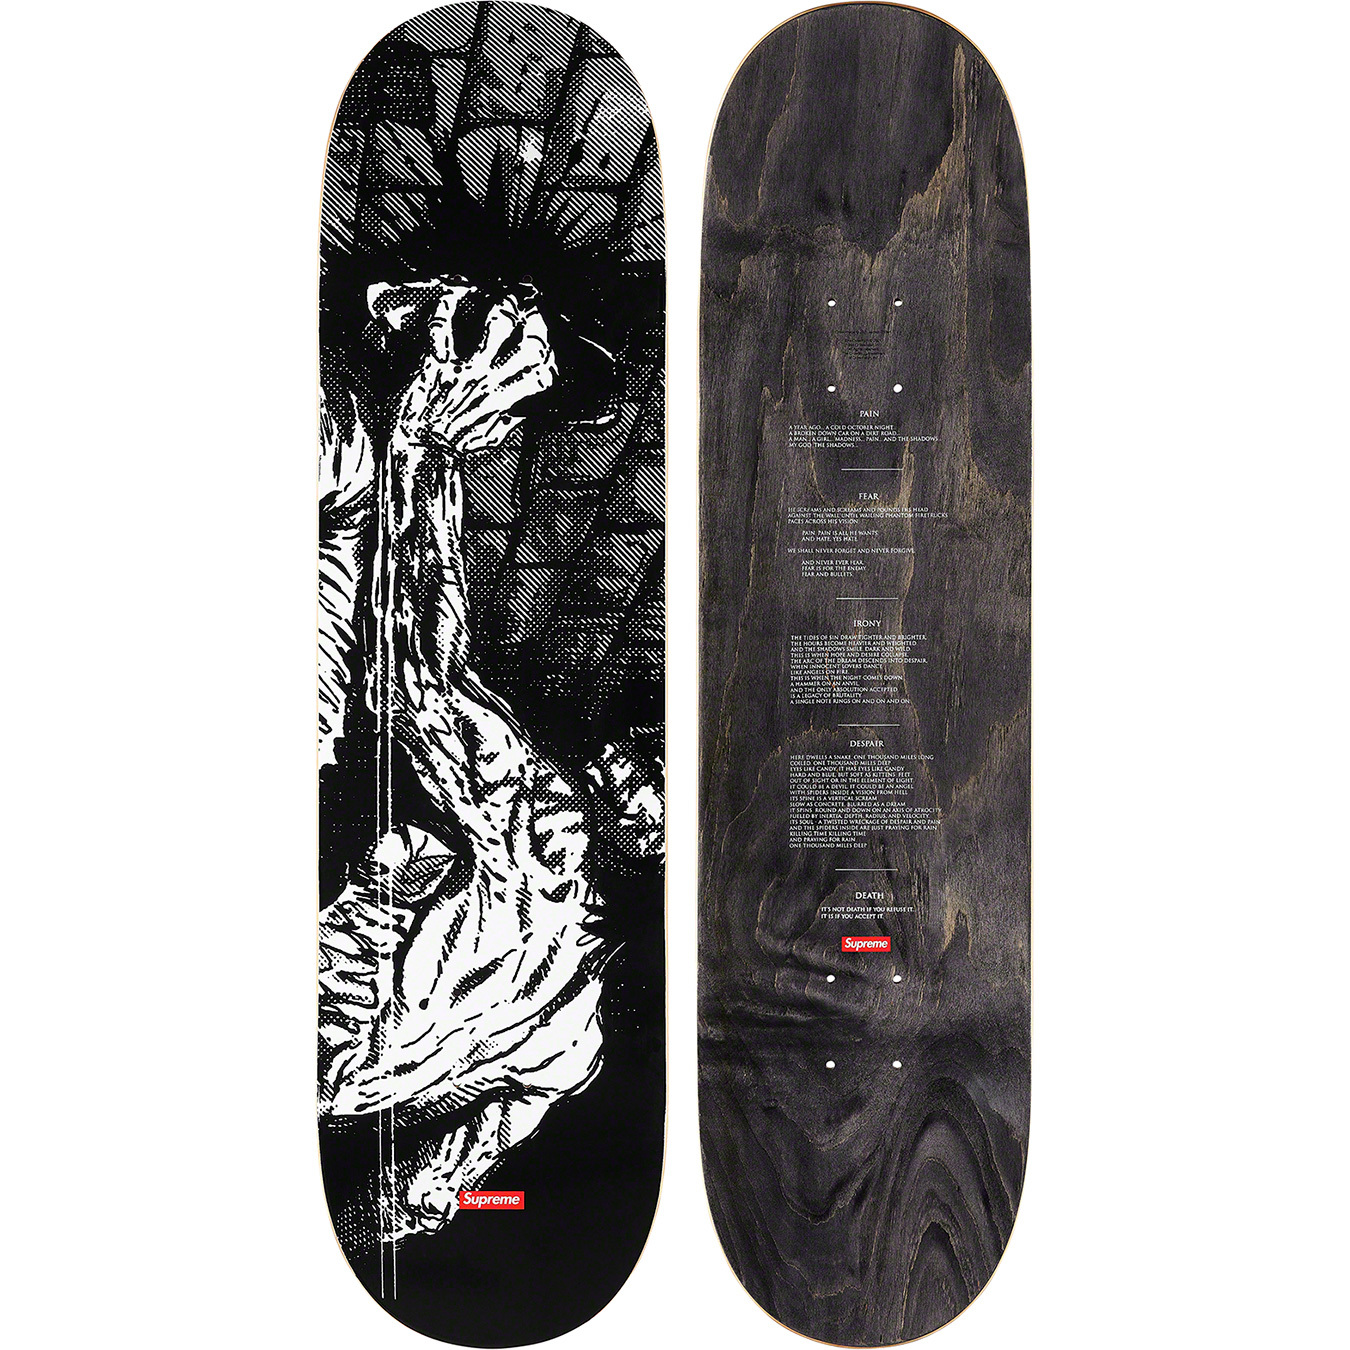 supreme-the-crow-21aw-21fw-collaboration-release-20210918-week4-skateboard